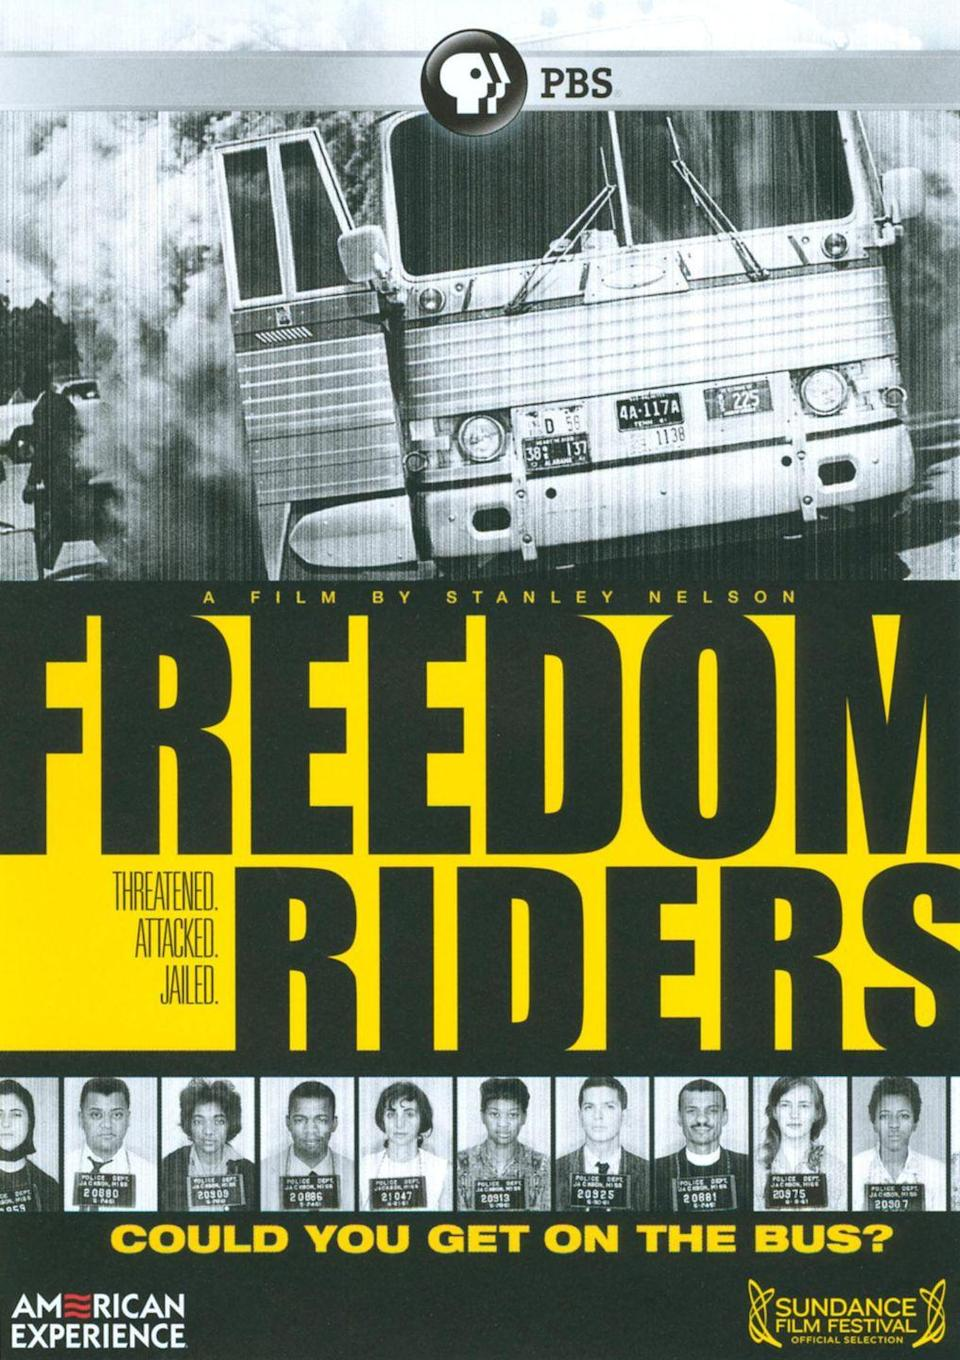 """<p><a class=""""link rapid-noclick-resp"""" href=""""https://www.pbs.org/wgbh/americanexperience/films/freedomriders/"""" rel=""""nofollow noopener"""" target=""""_blank"""" data-ylk=""""slk:STREAM NOW"""">STREAM NOW</a></p><p> Based on historian Raymond Arsenault's book of the same name, this documentary tells the story of the civil rights activists known as the Freedom Riders, who launched a peaceful protest against racial segregation on buses and trains in the 1960s.</p>"""